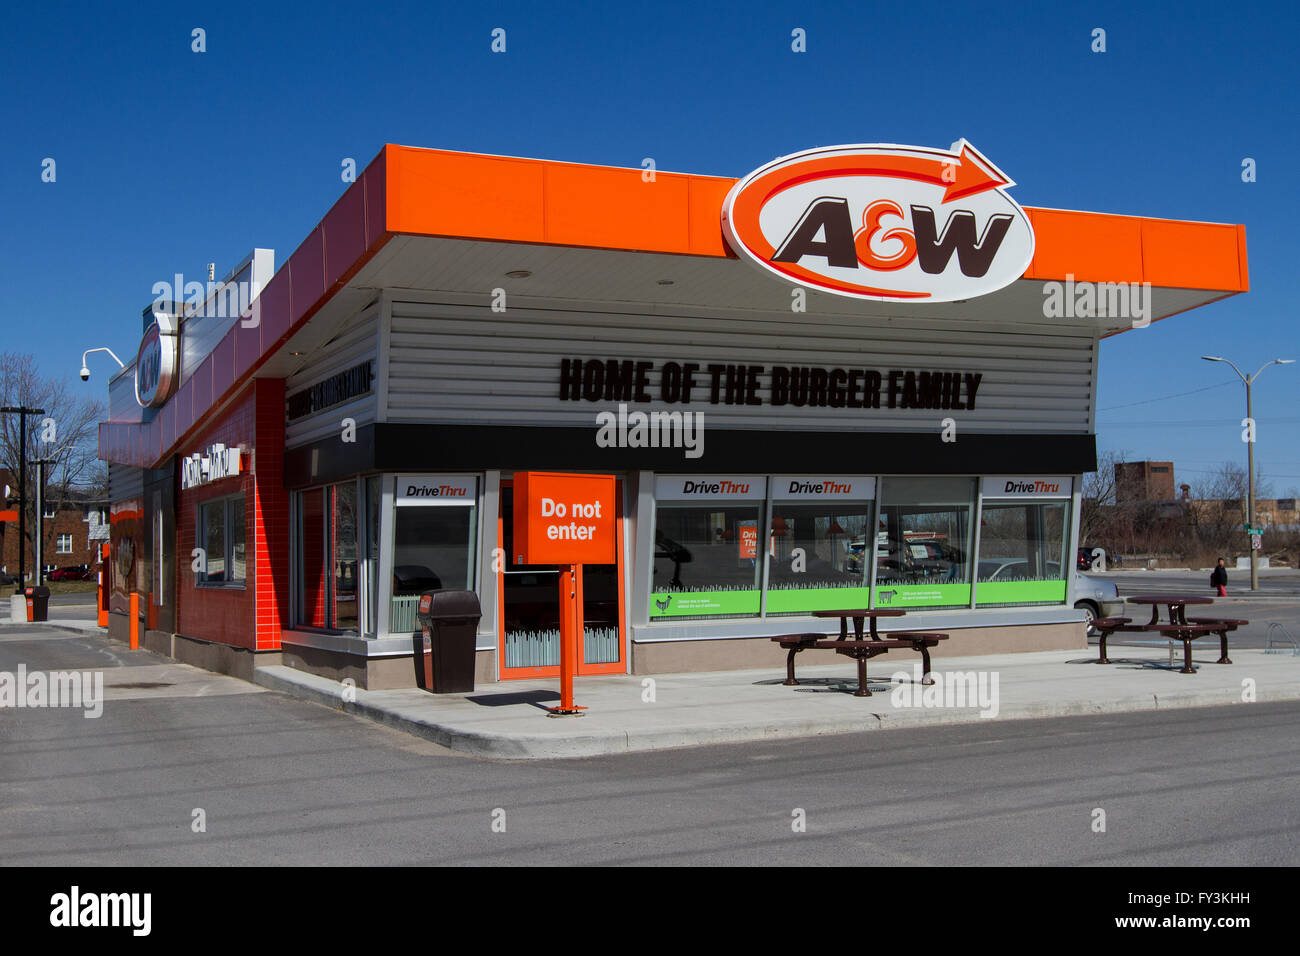 aw restaurants is a chain of fast food essay Fast food vs fine dining restaurants 1 a study on growth of fastfood chains in vadodara: an opportunity or a threat to fine- dining restaurants school of business and law.